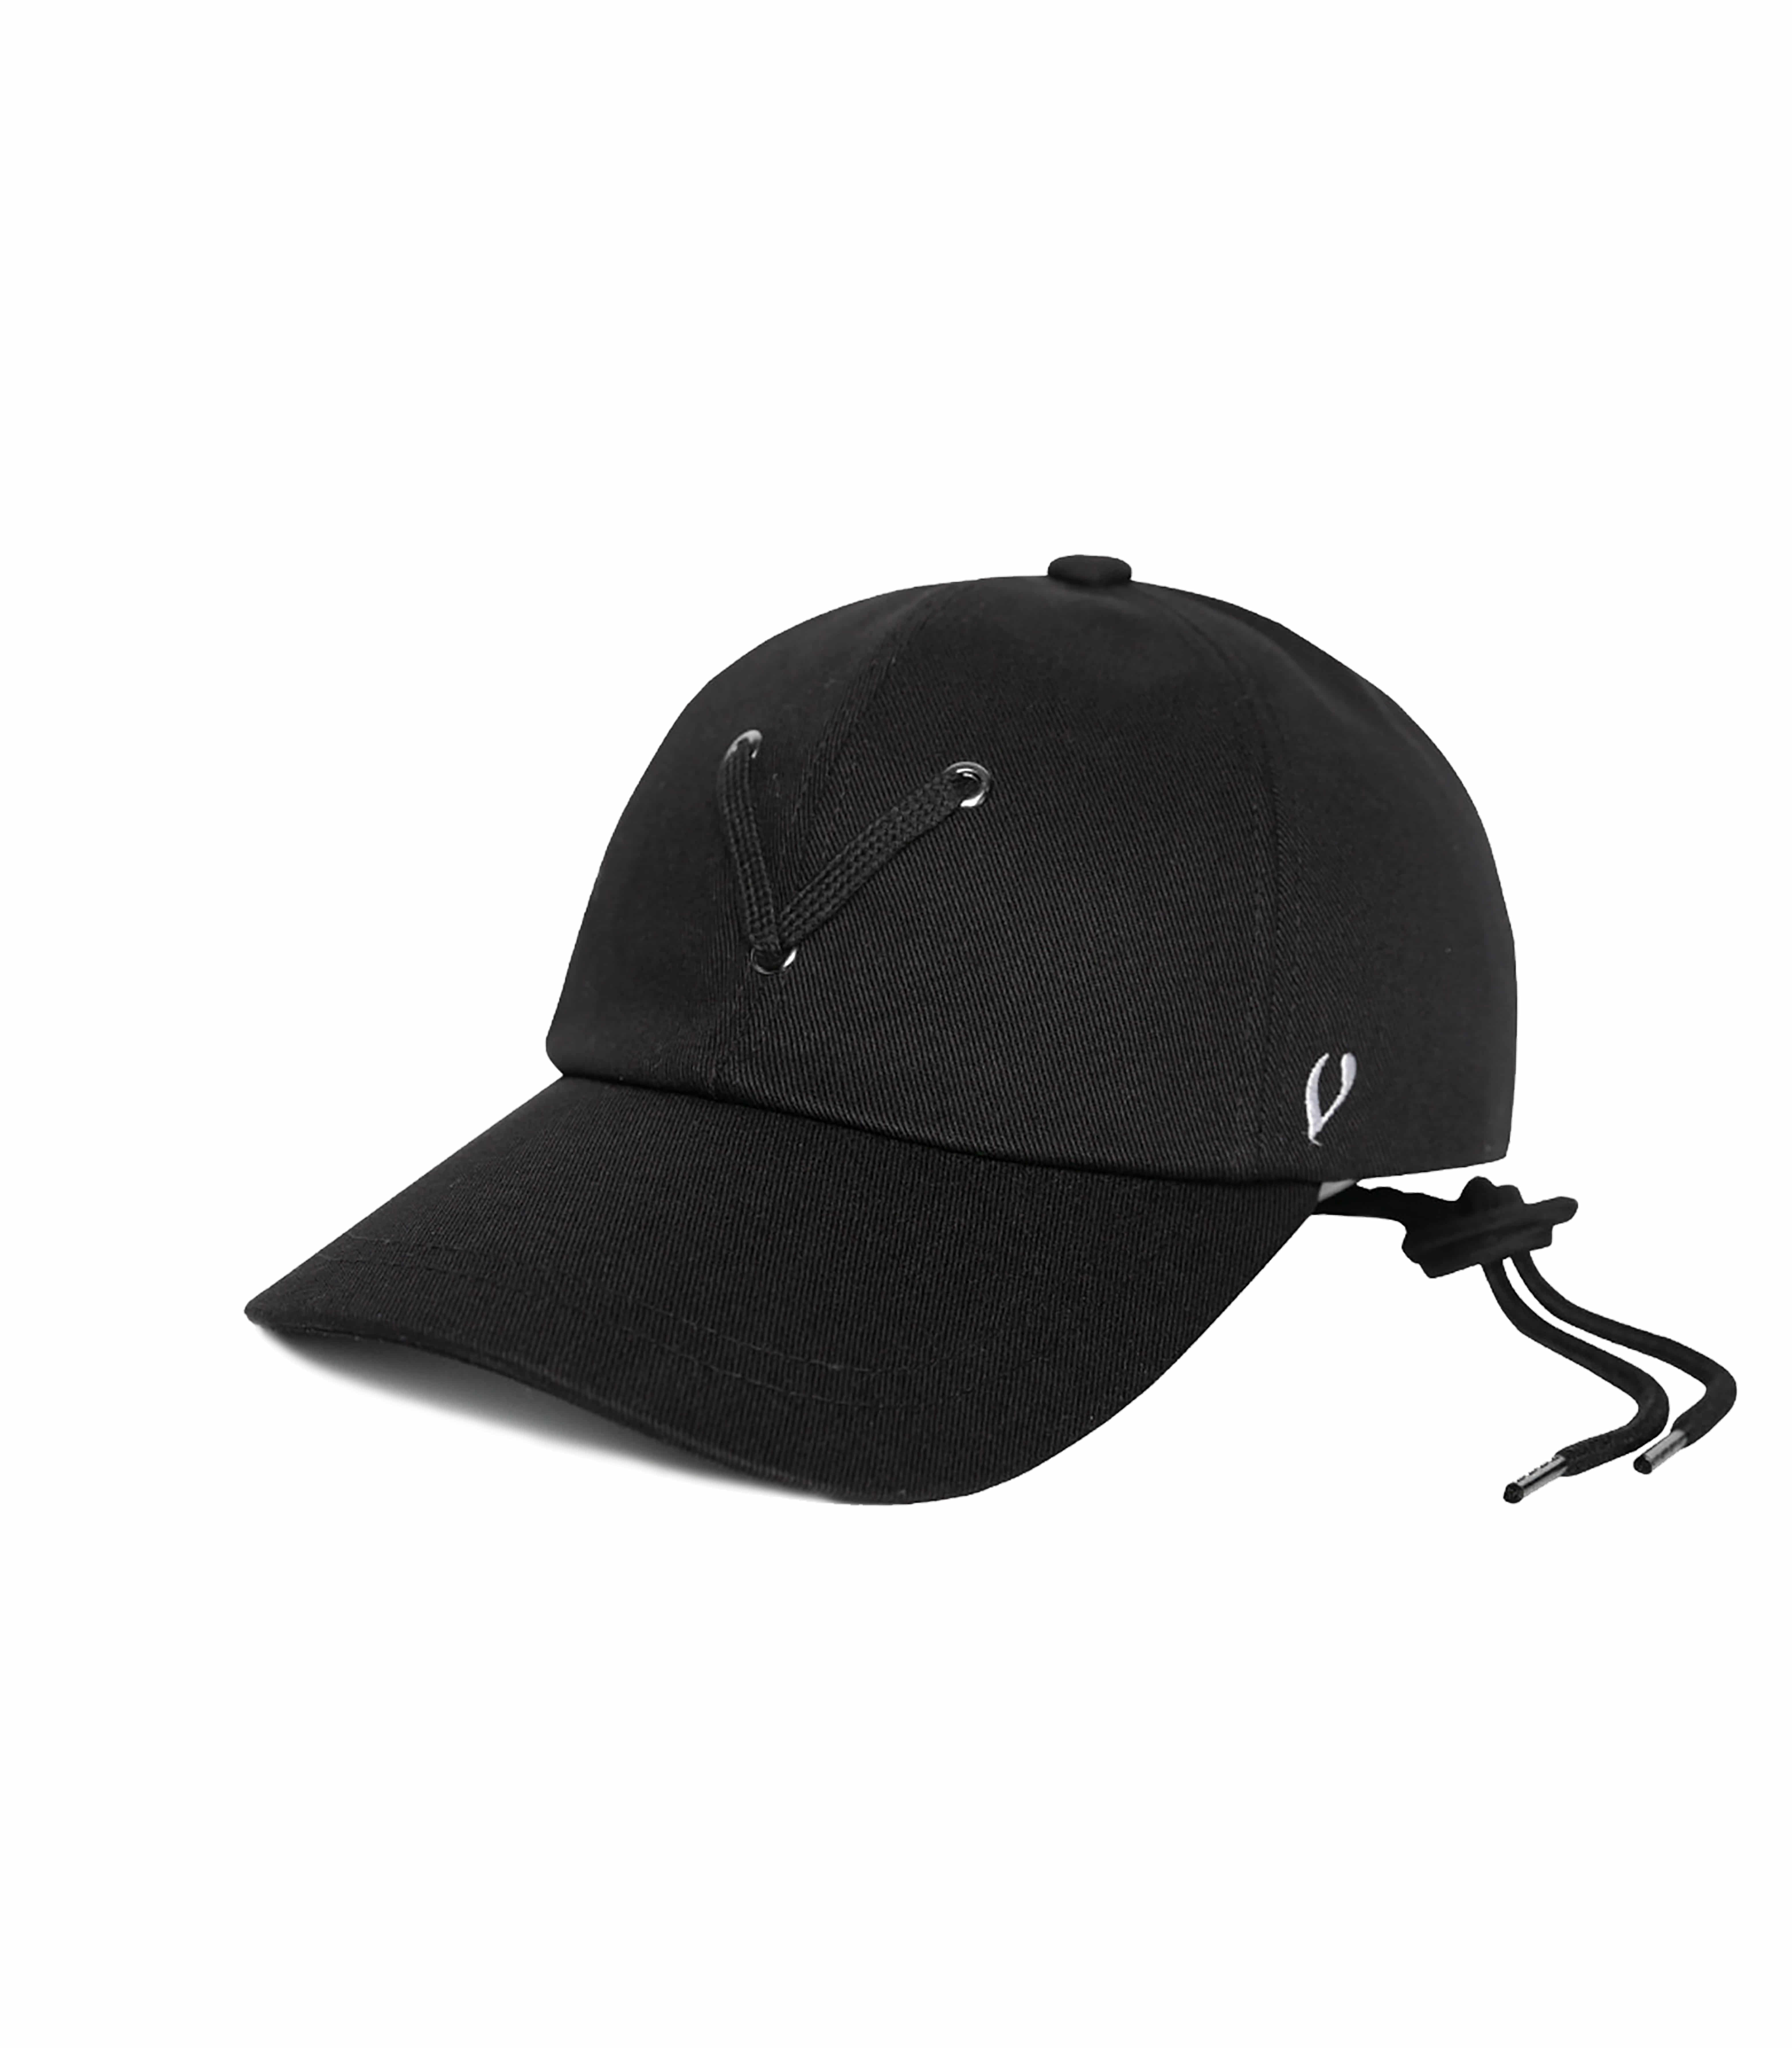 BLACK LINE - STRING POINT BALL CAP (black)